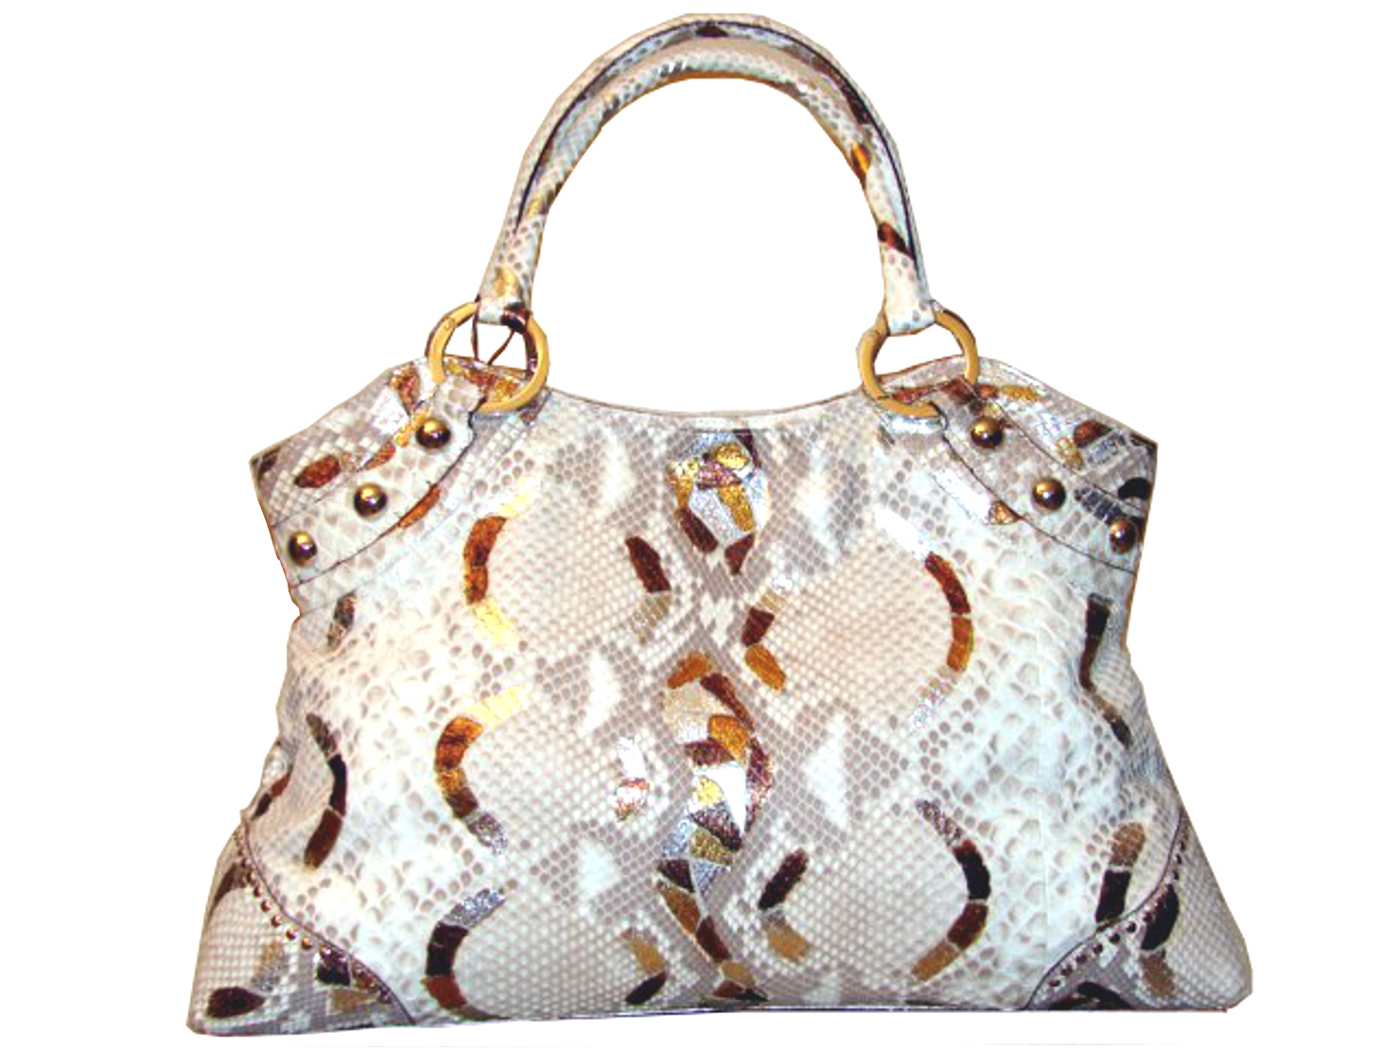 Braschi Handbag Mosaico Color in Genuine Python Leather!